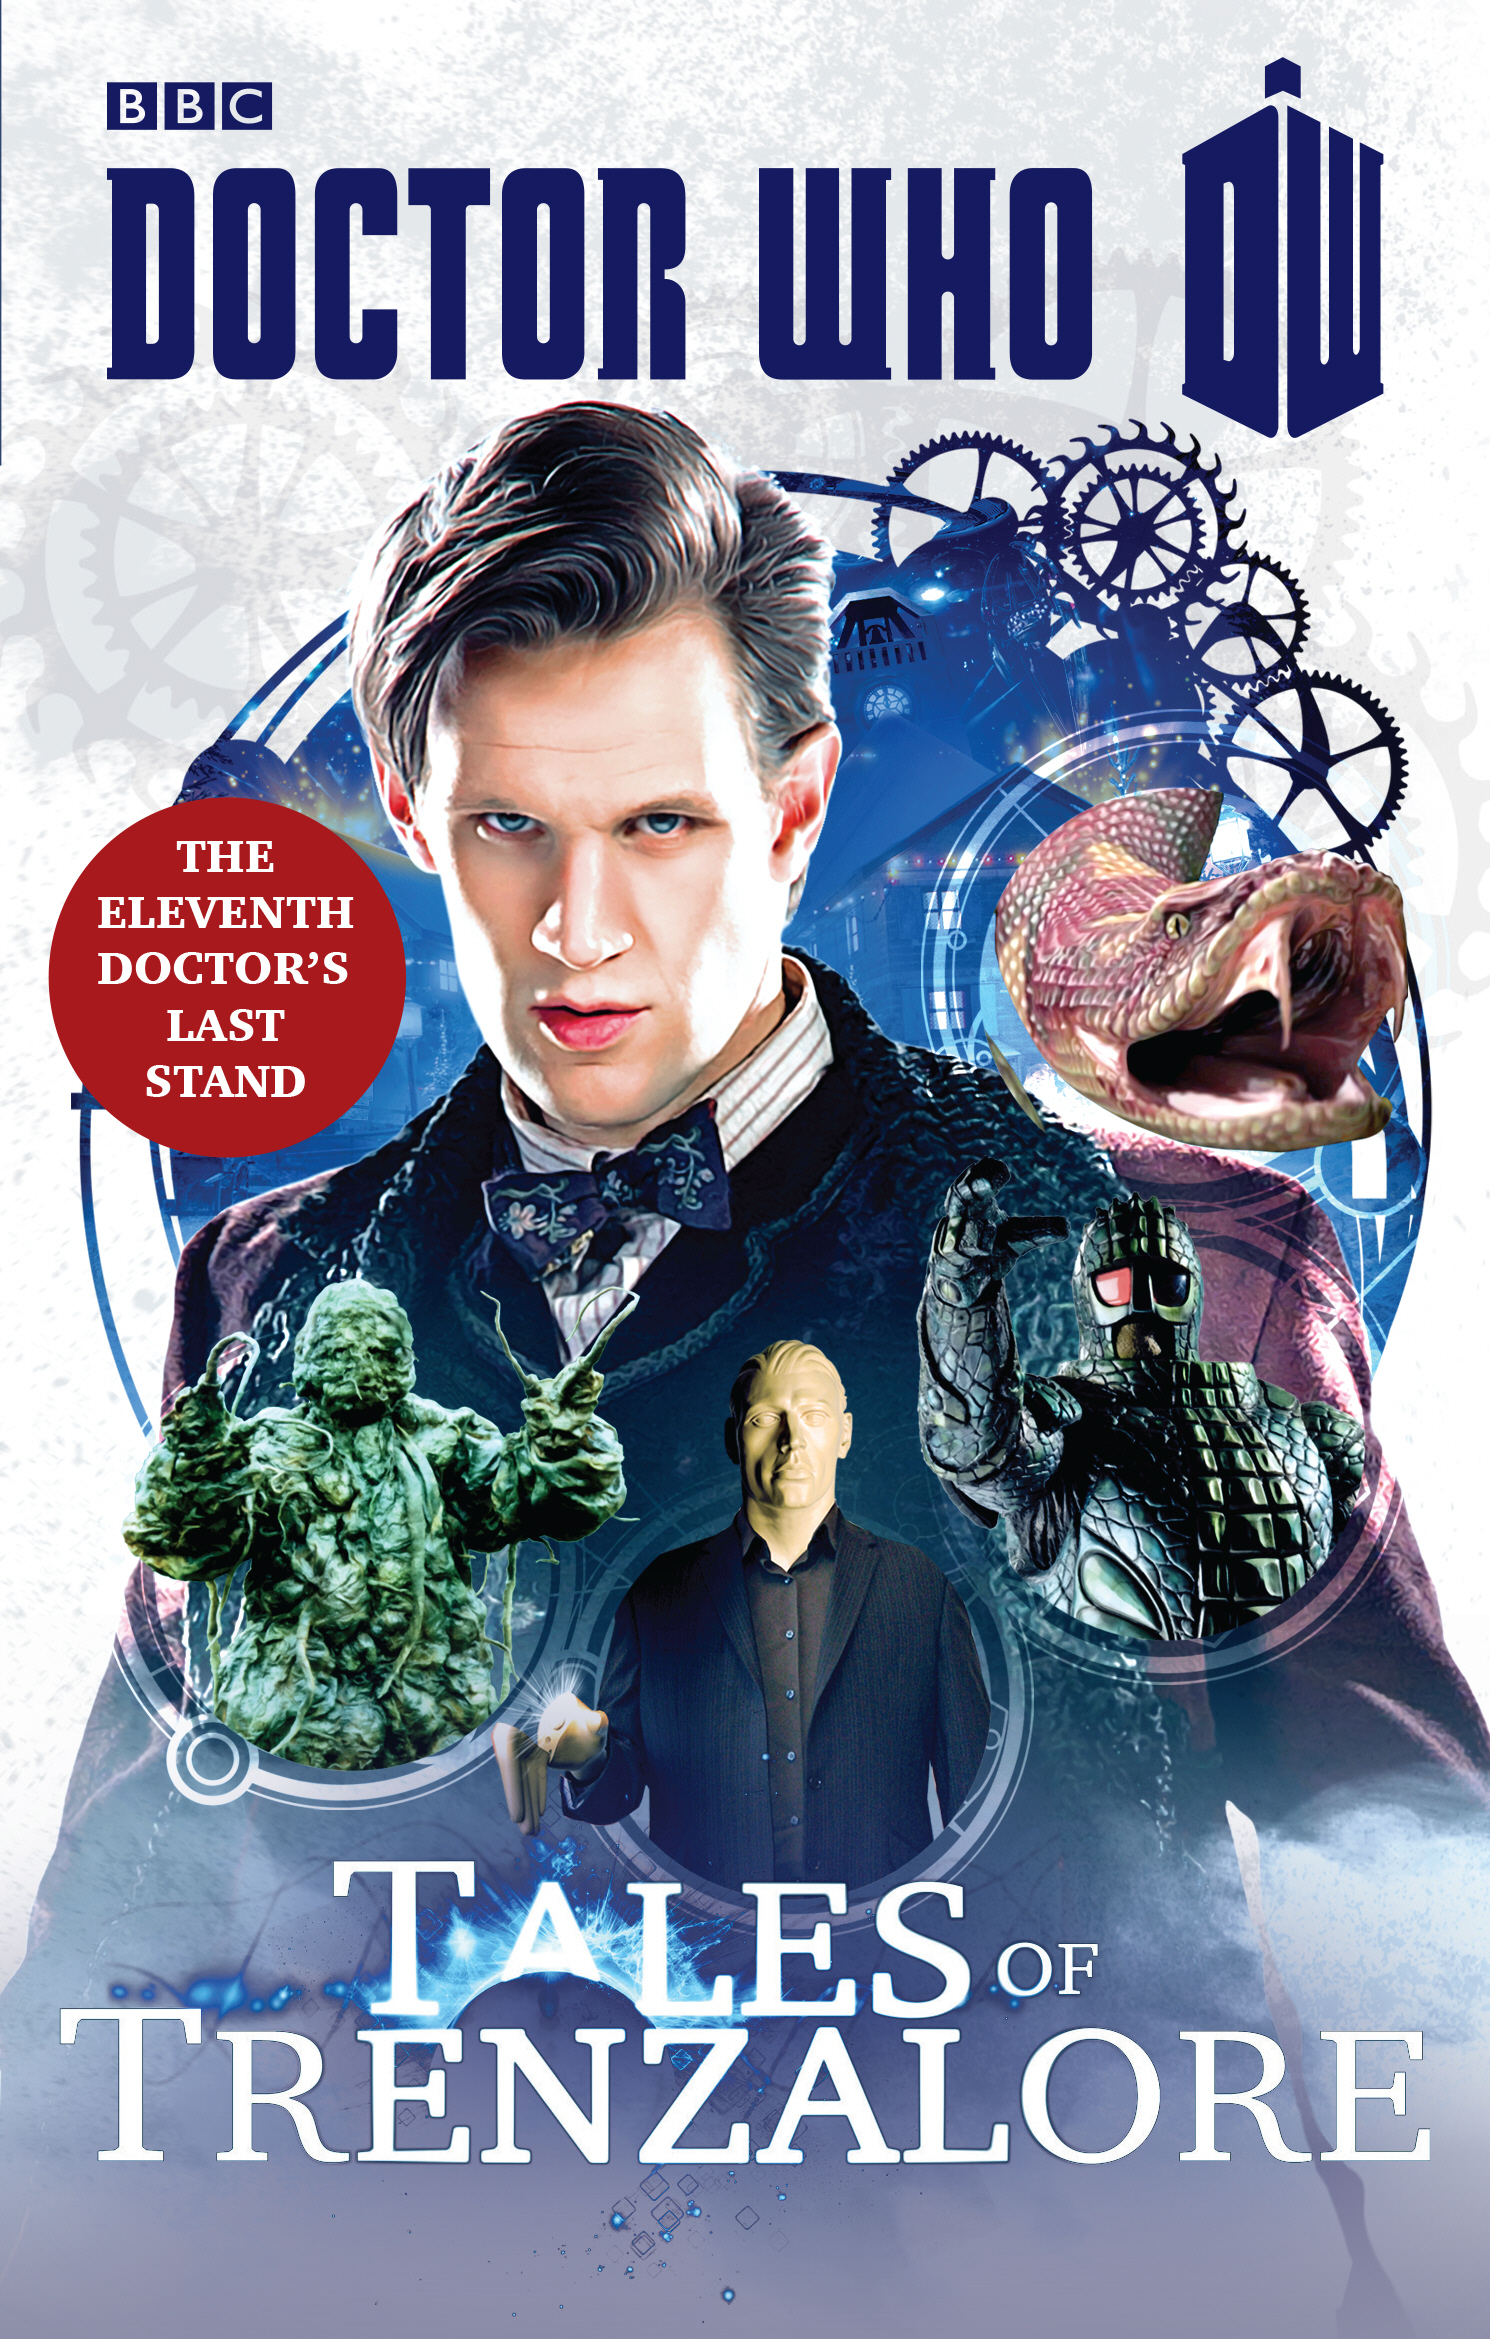 Doctor Who: Tales of Trenzalore The Eleventh Doctor's Last Stand